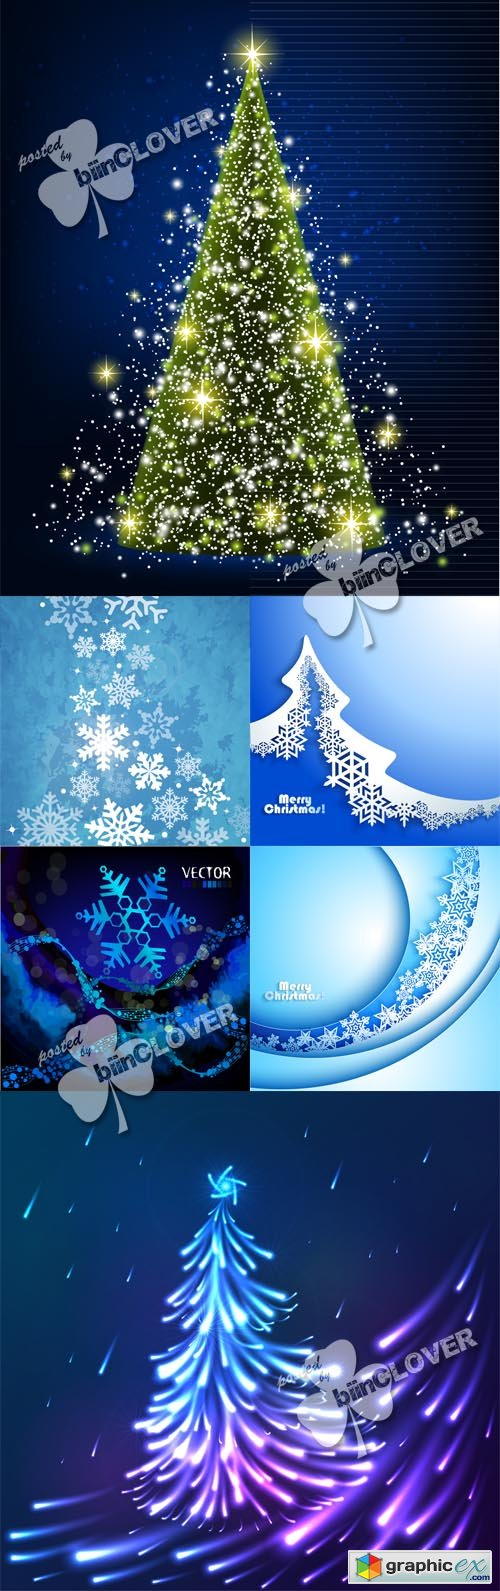 Vector Christmas background 0499